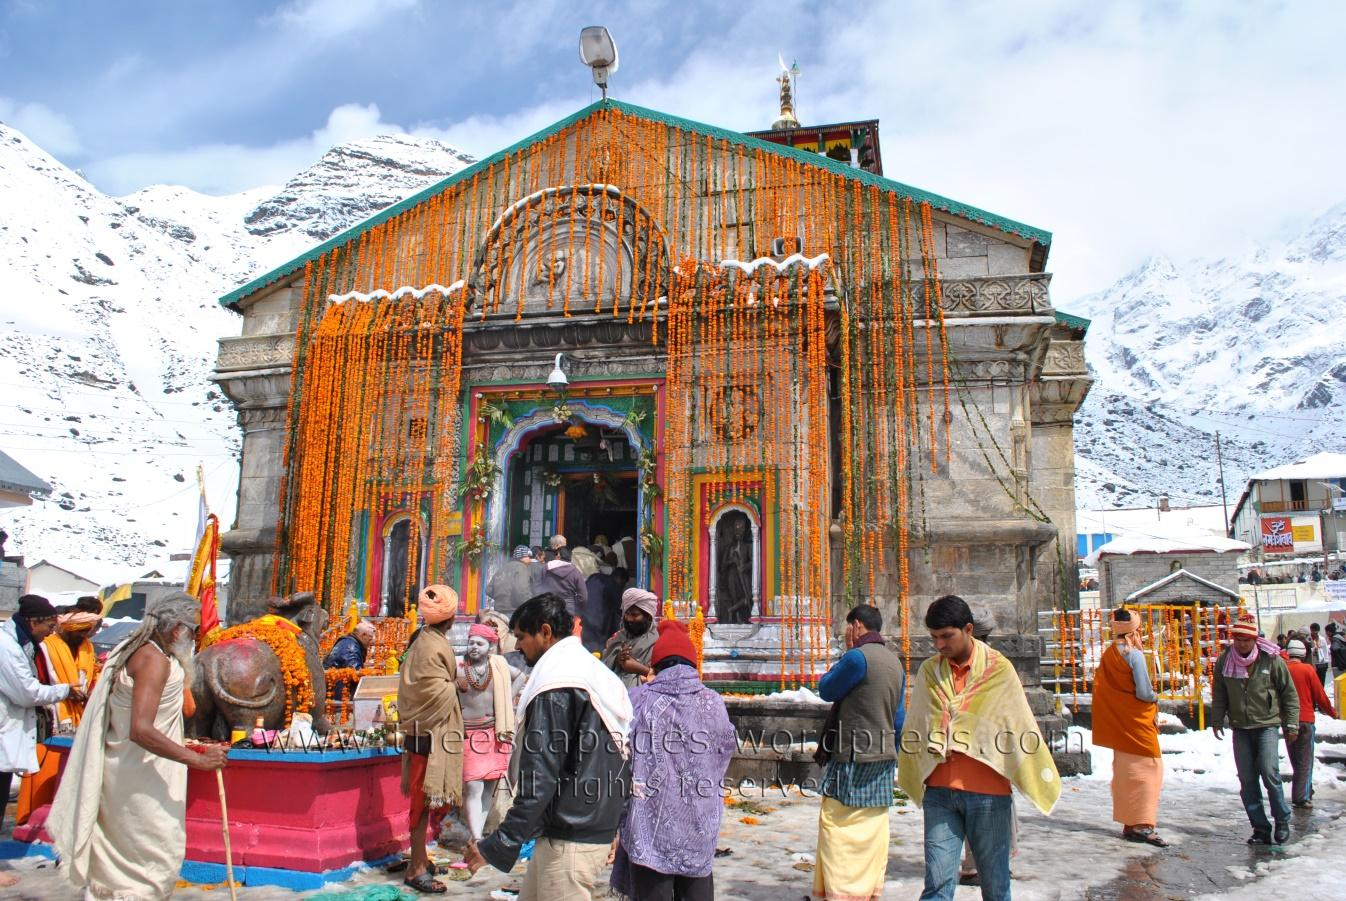 https://theescapades.files.wordpress.com/2012/06/devotees-kedarnath1.jpg